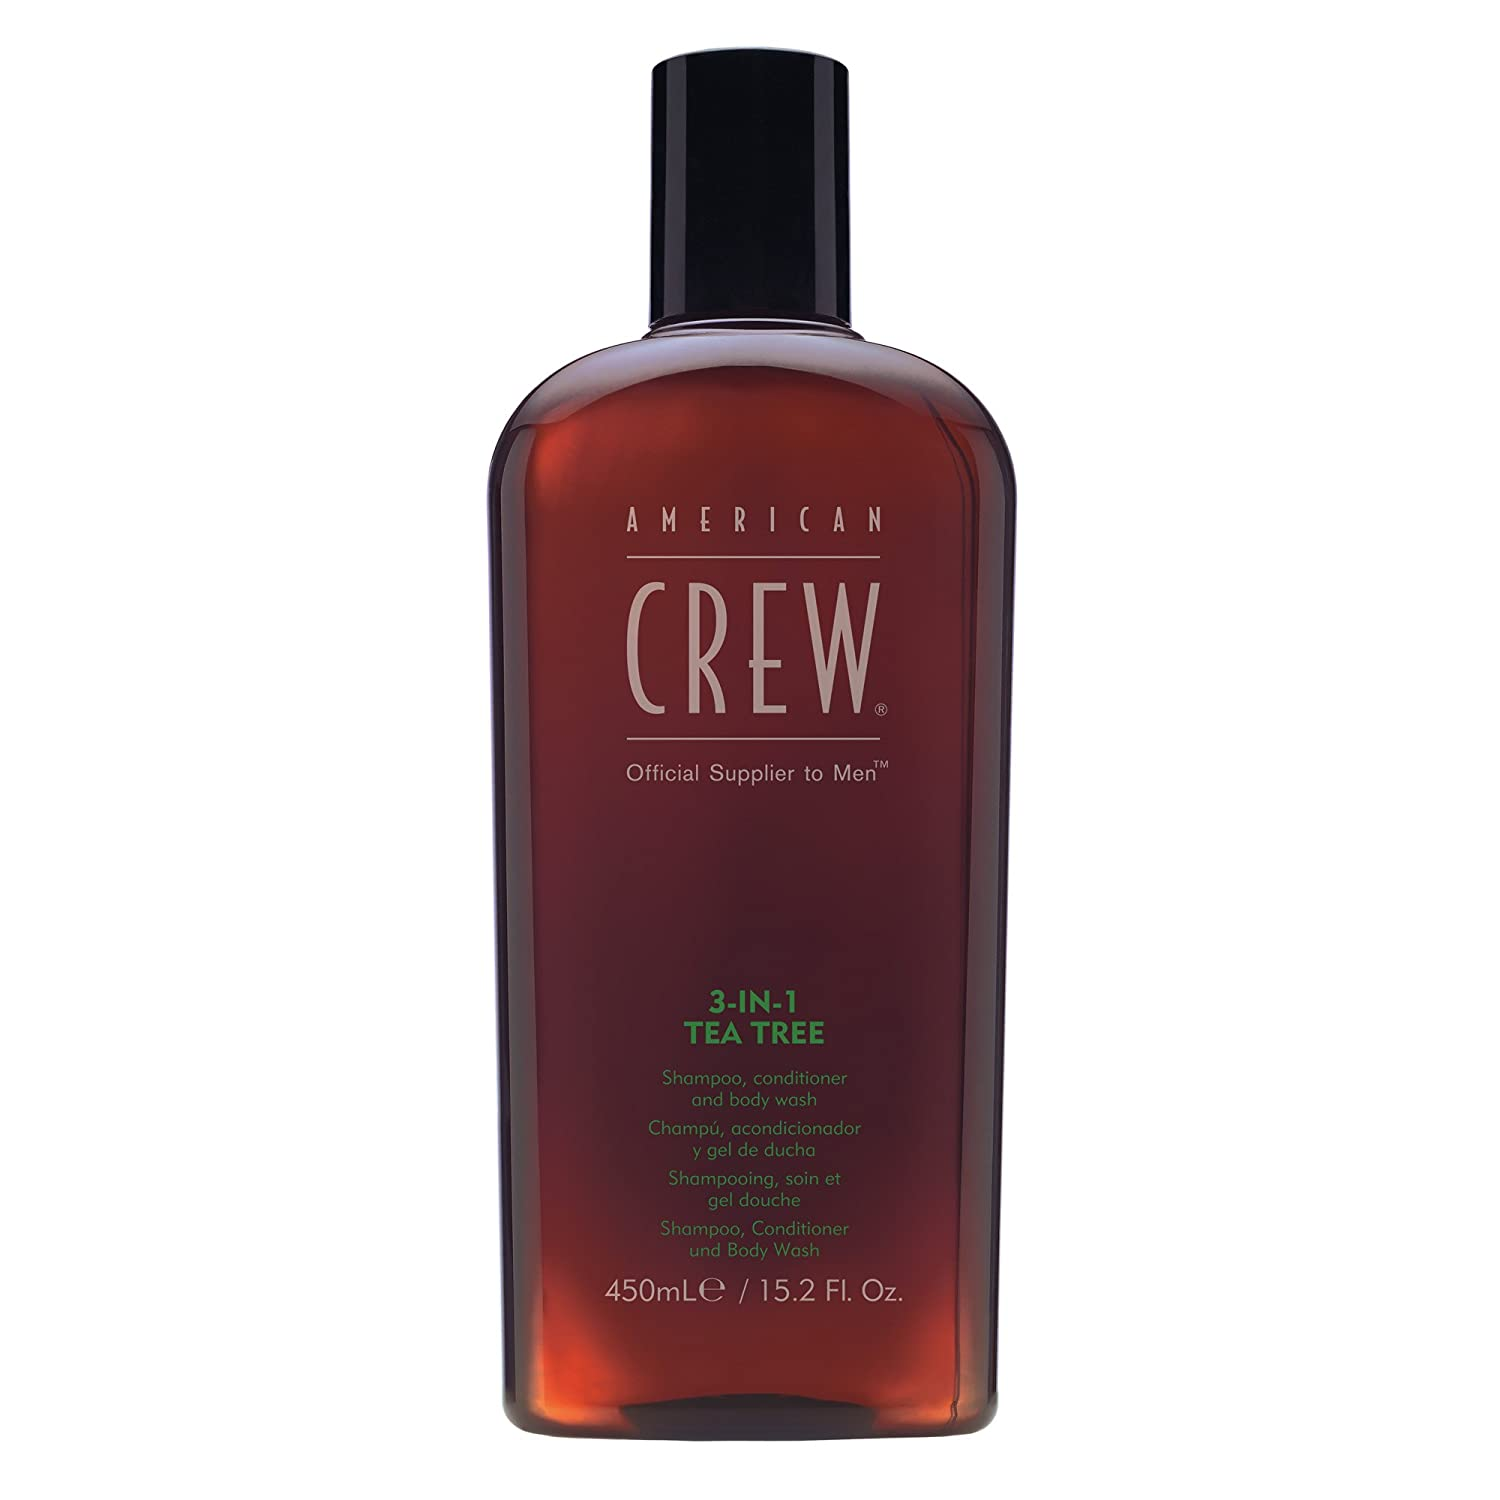 American Crew Balsamo, Tea Tree 3 in 1, Conditioner e Body Wash, 450 ml 7241846000